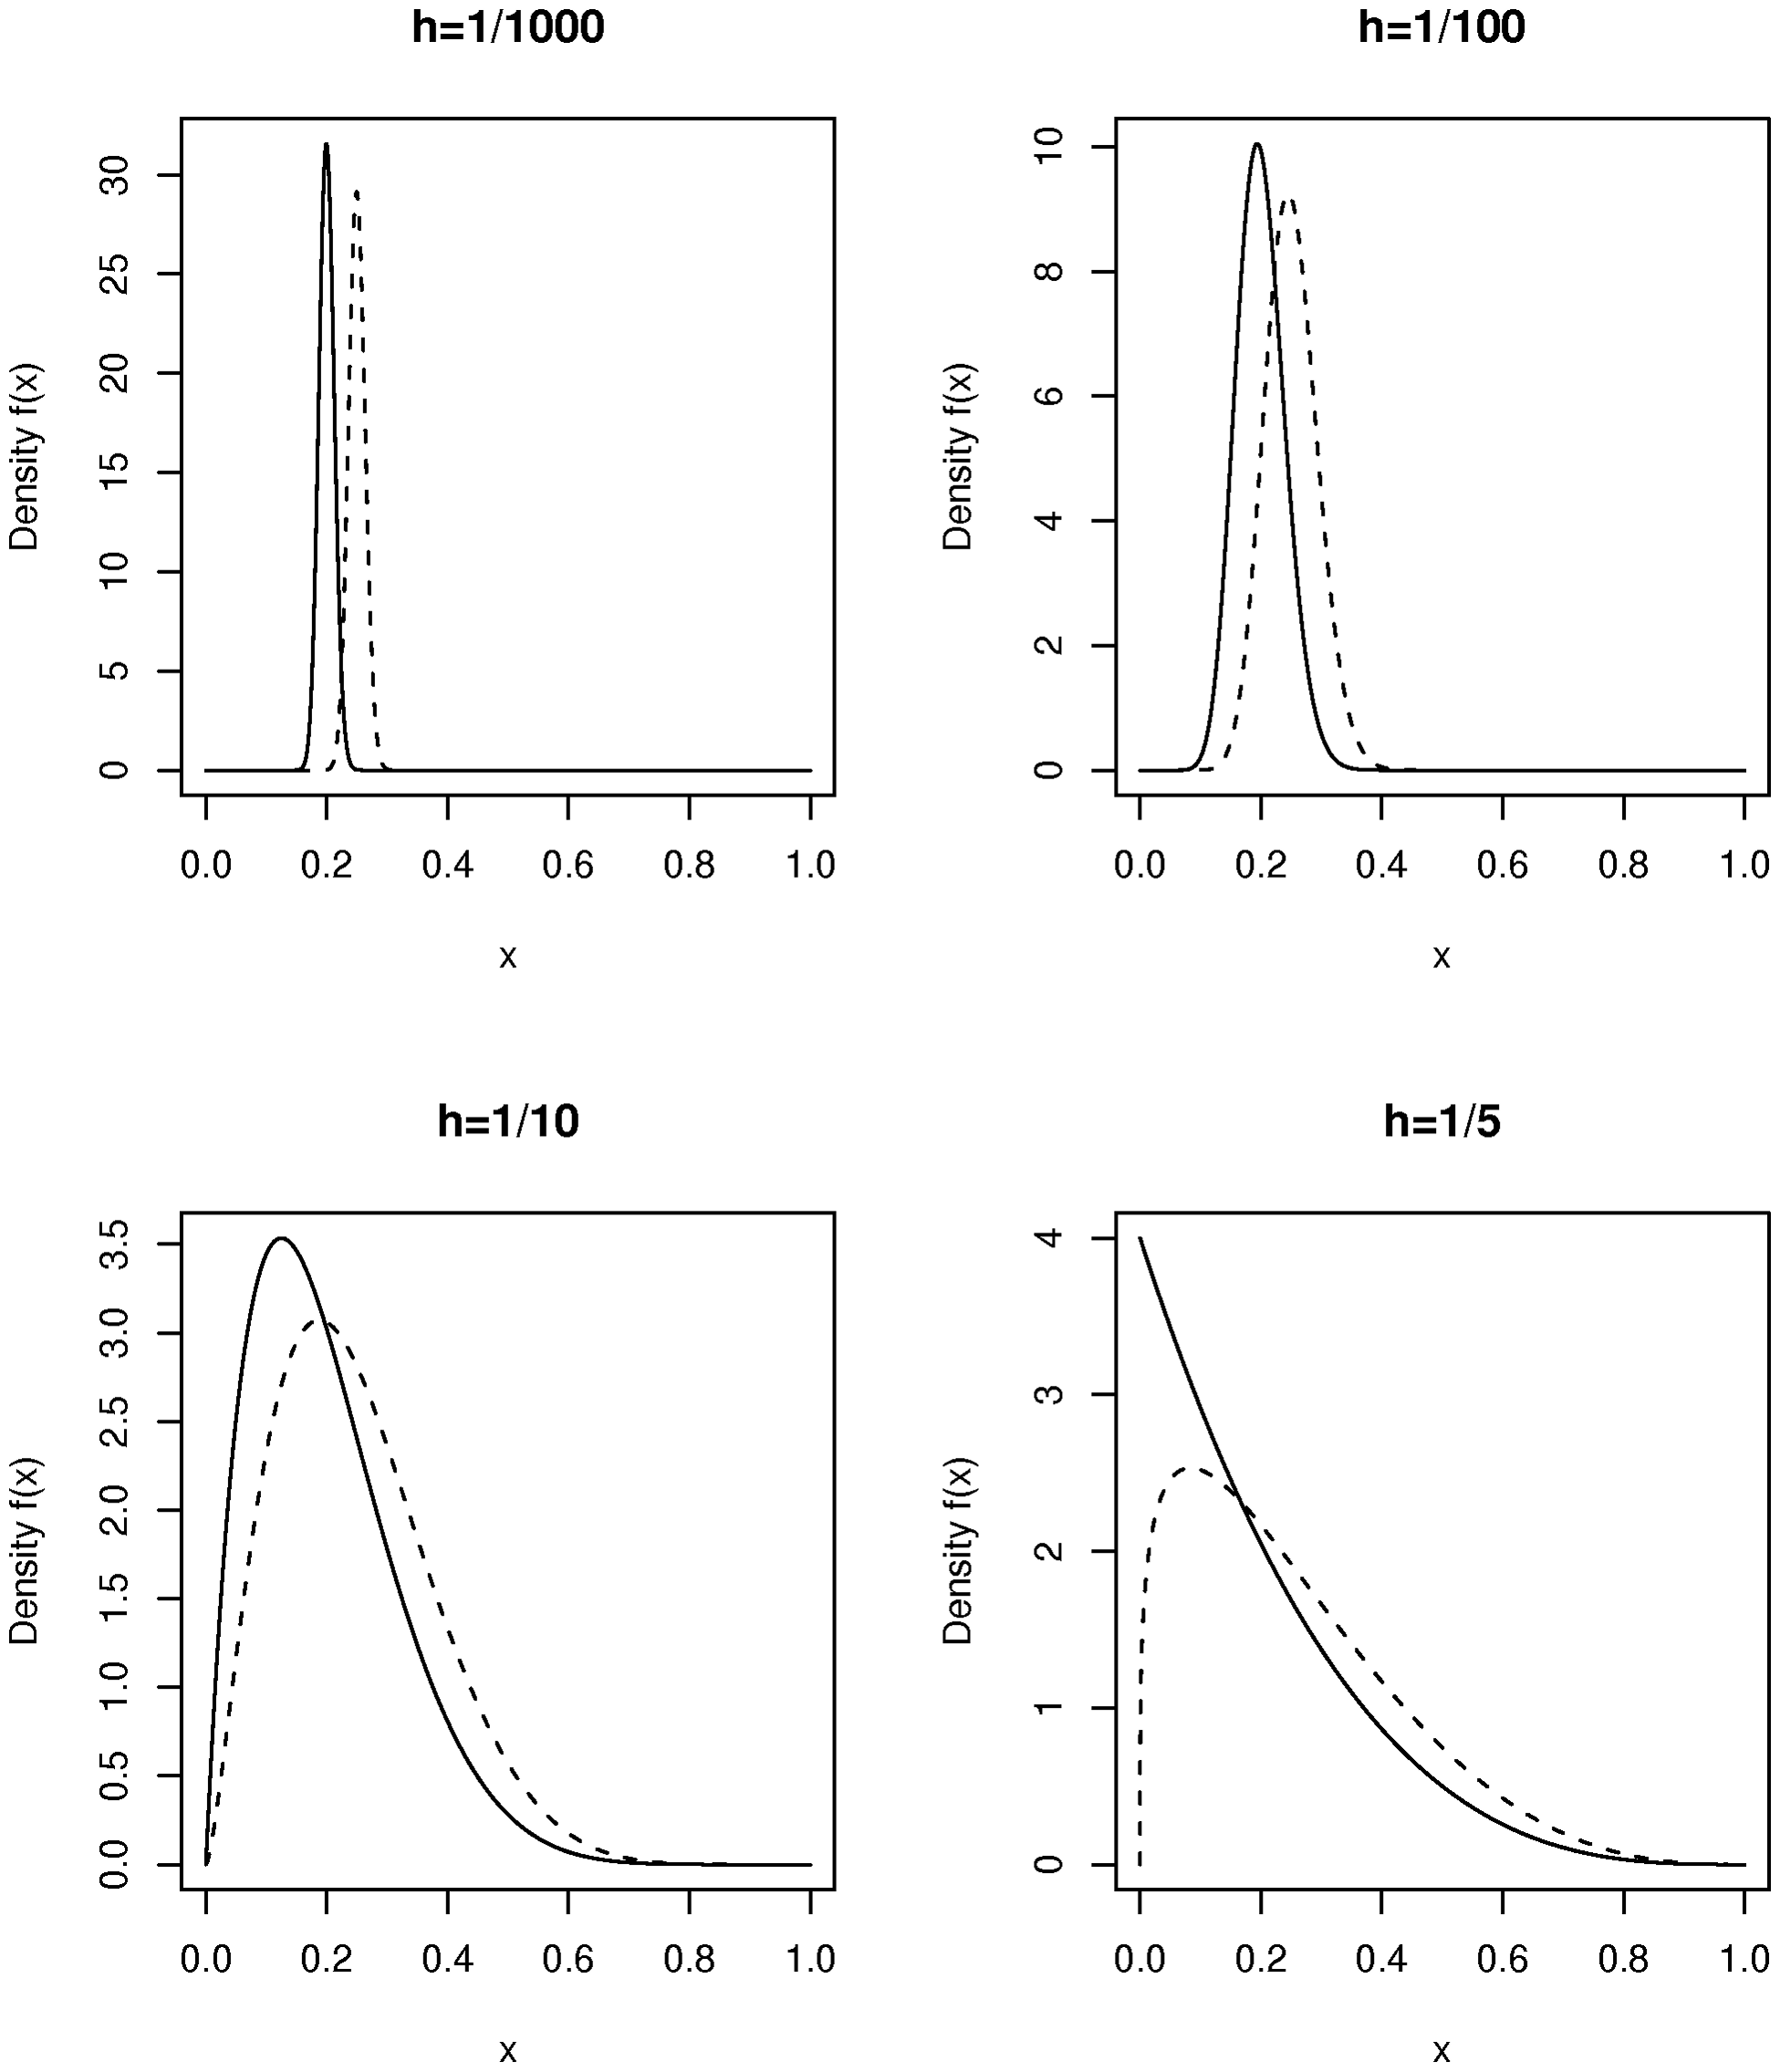 Plot of the density function of beta distributions parameterized by mean  and heterogeneity factor .